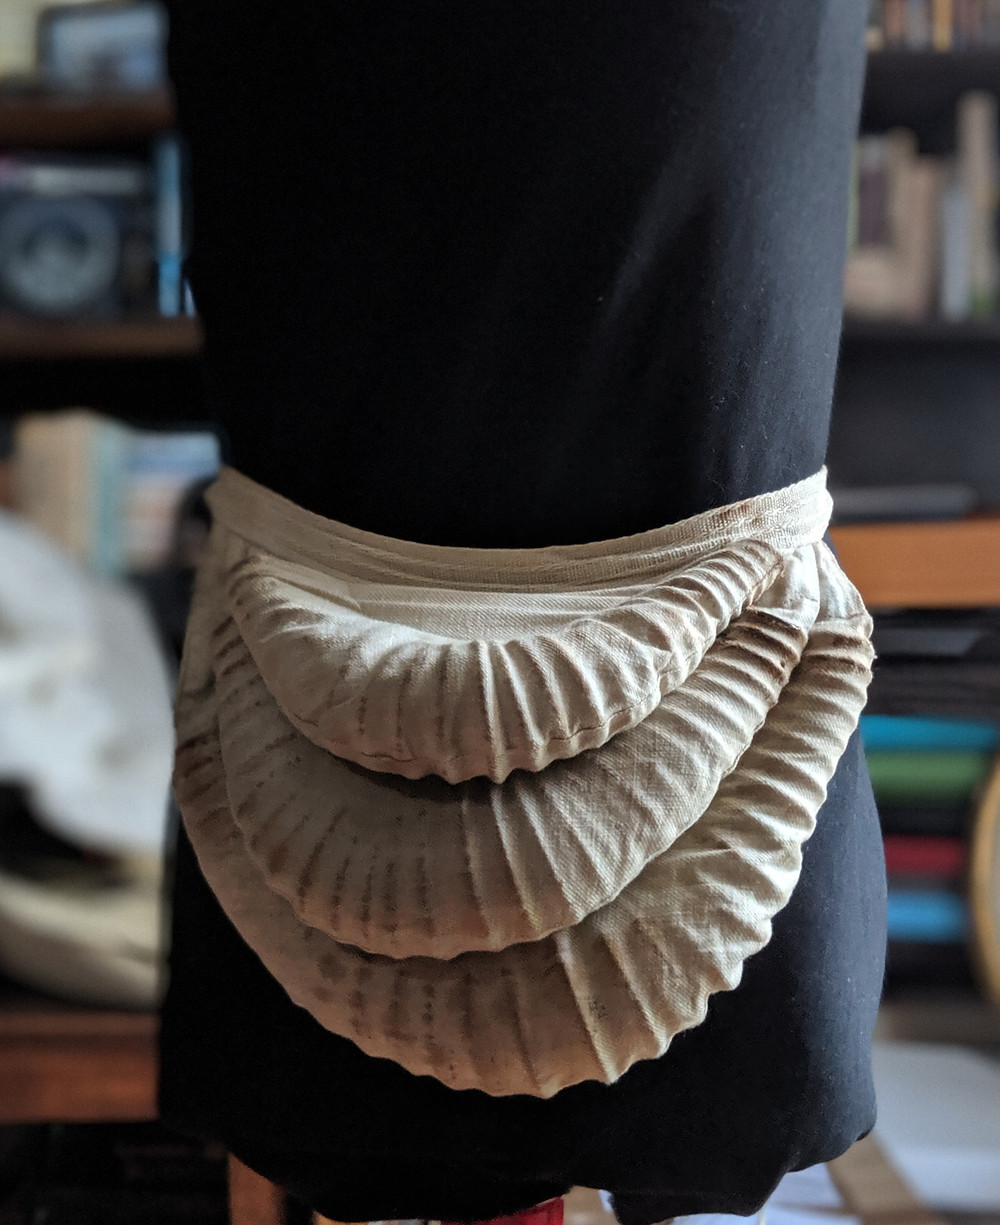 Coil bustle made of cotton and wire coil